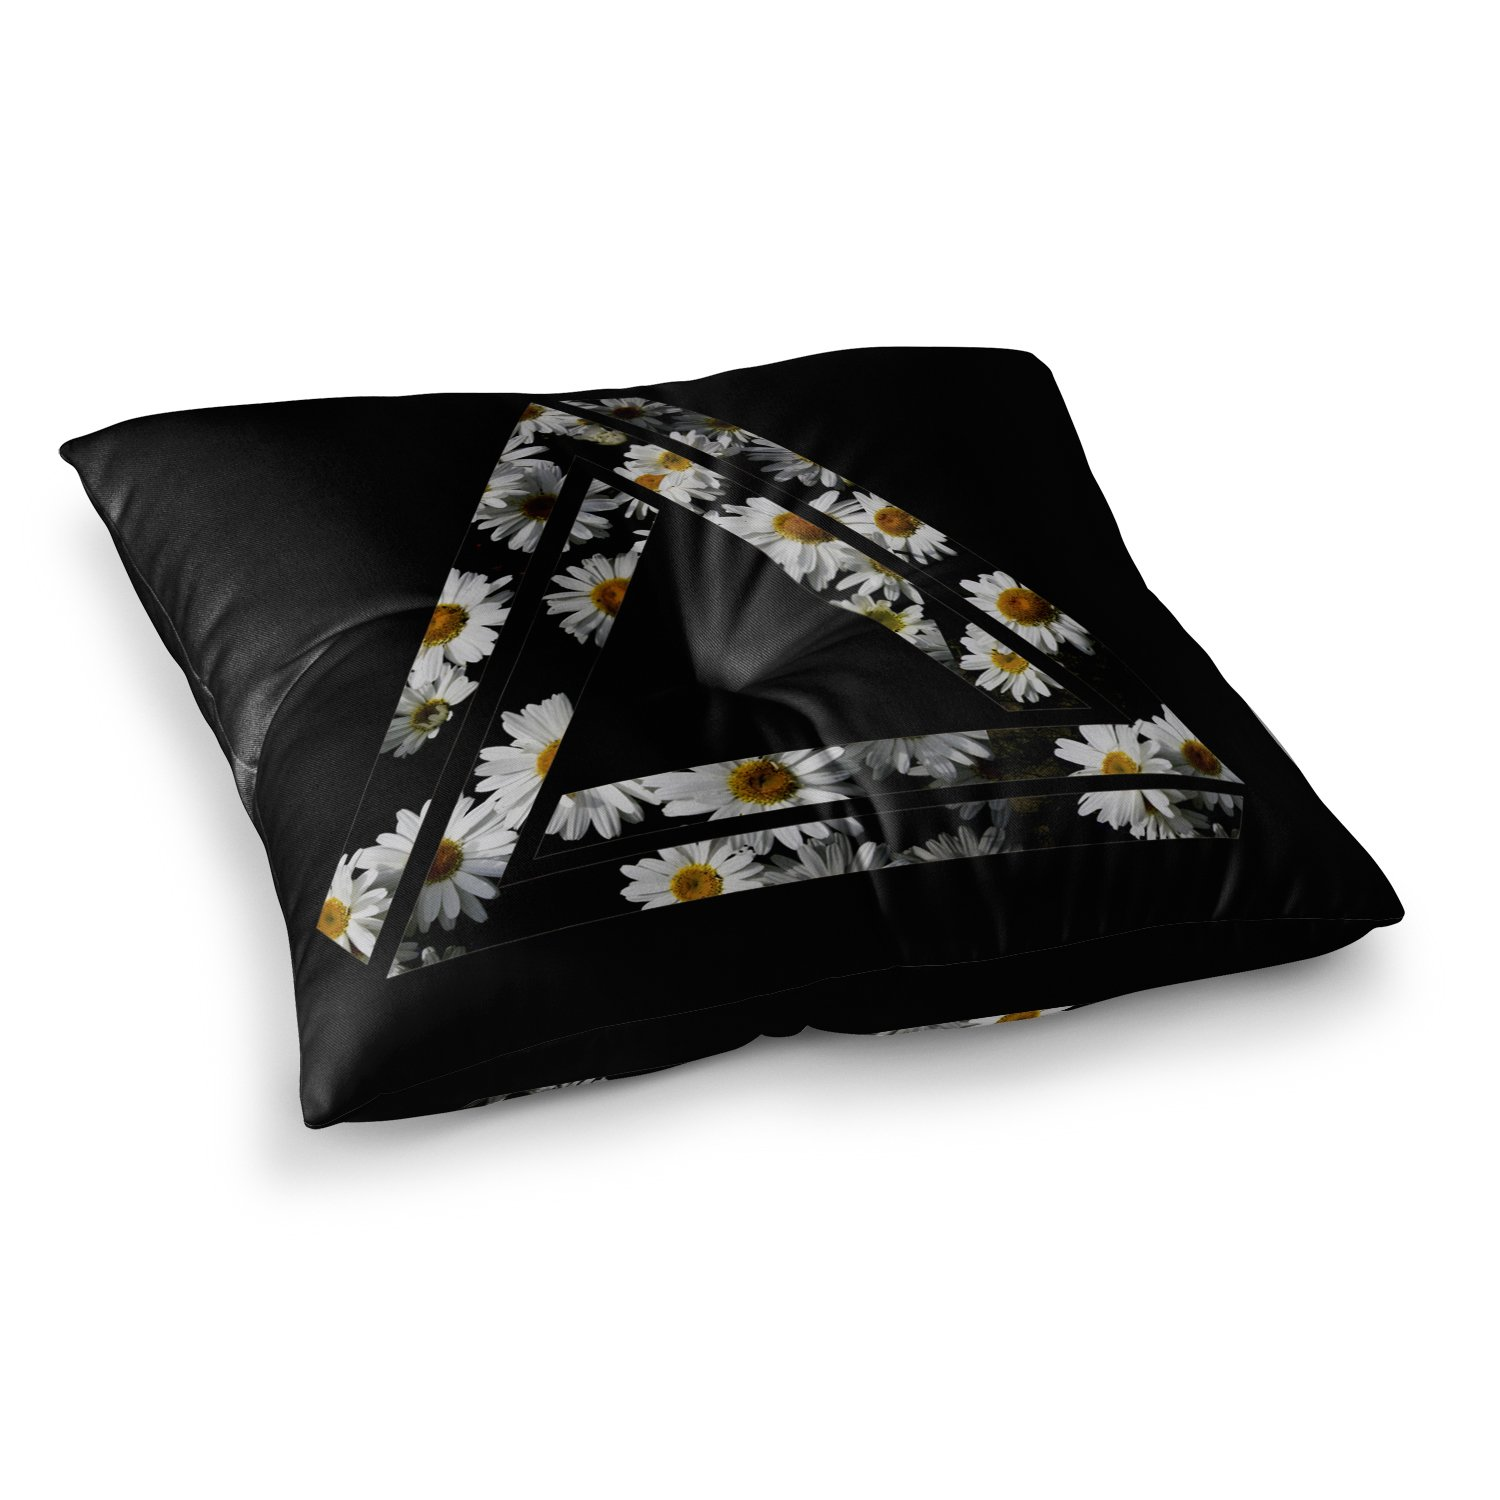 Kess InHouse Alias Impossible Daisy Chain Black Yellow 26 x 26 Square Floor Pillow